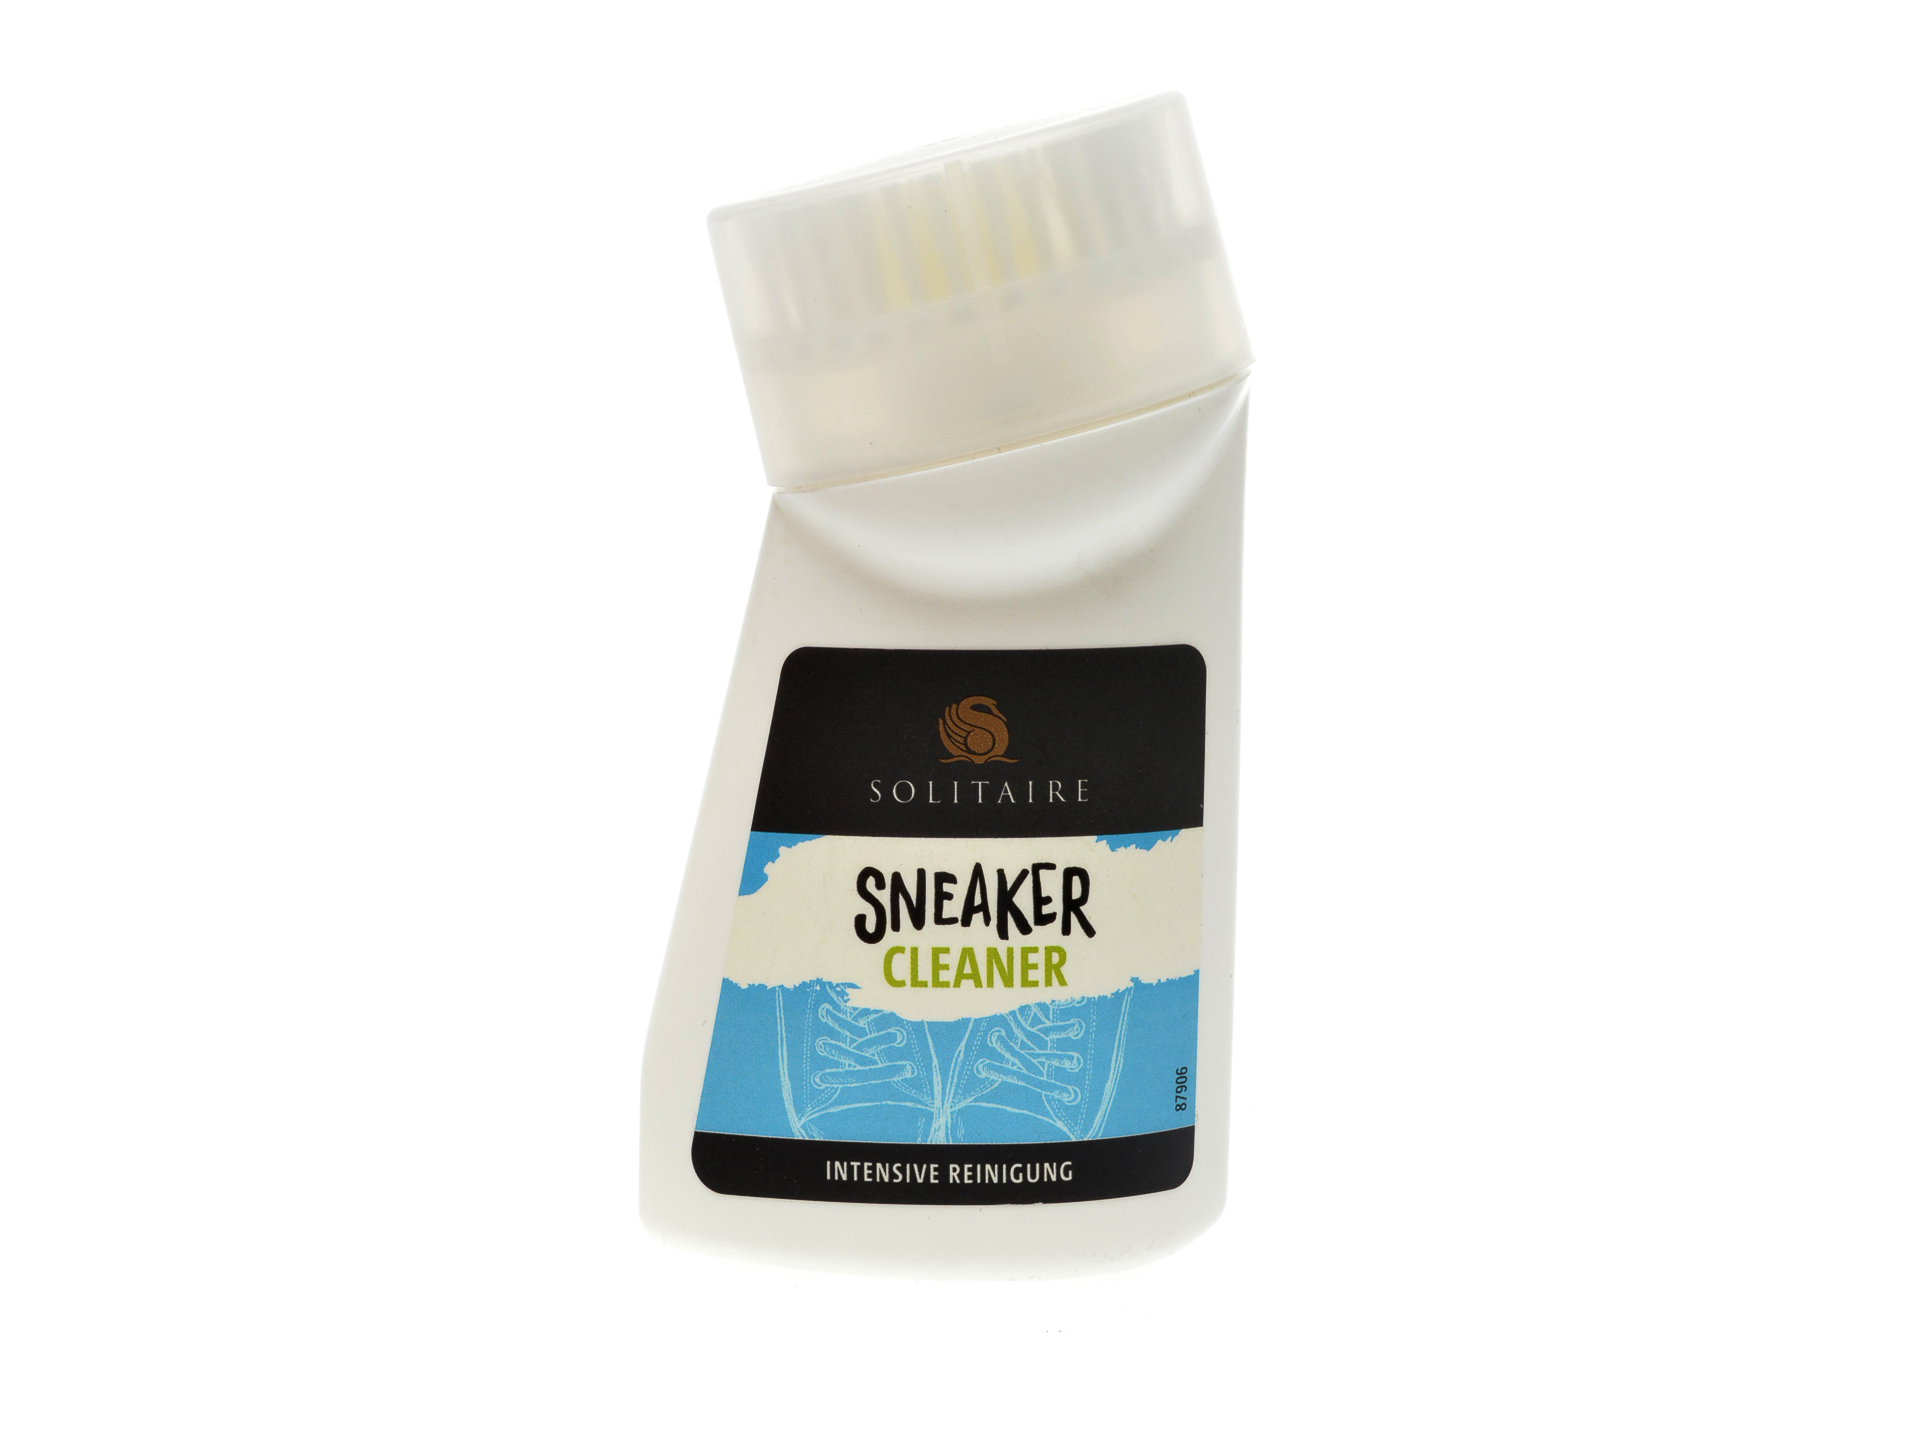 Spray sneaker cleaner, Solitaire